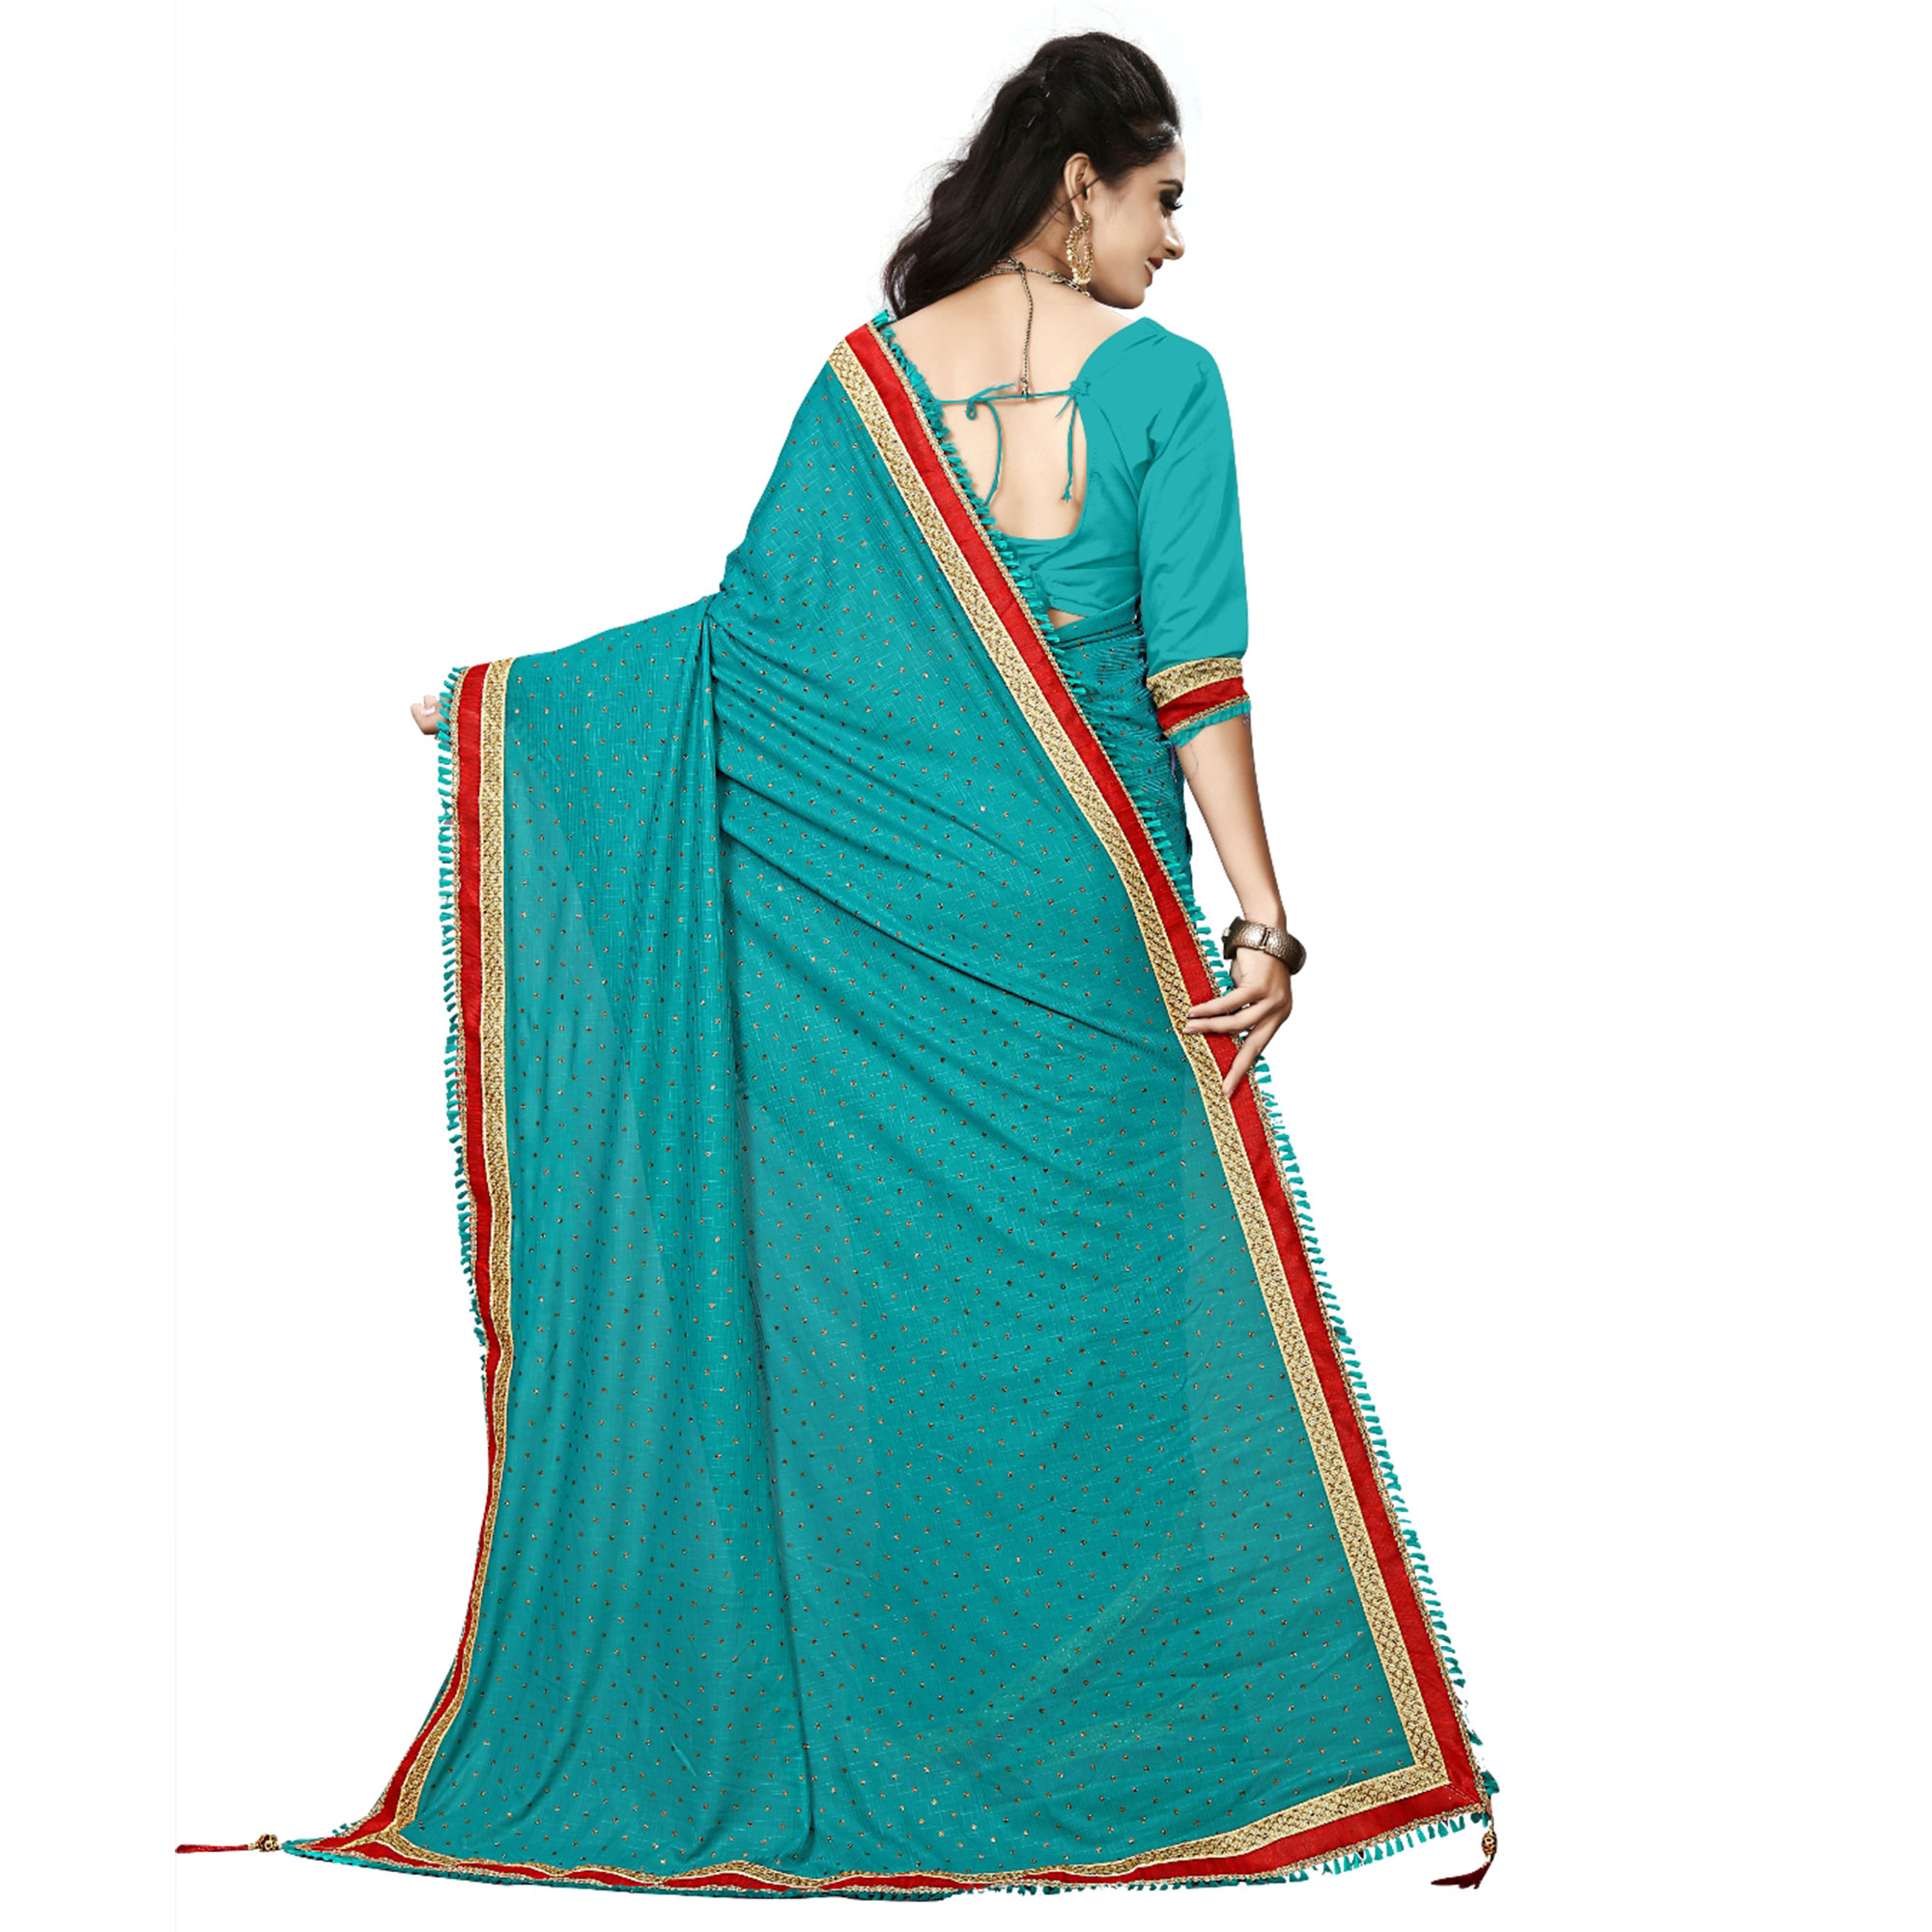 Elegant Sky Blue Colored Party Wear Lycra Blend Saree